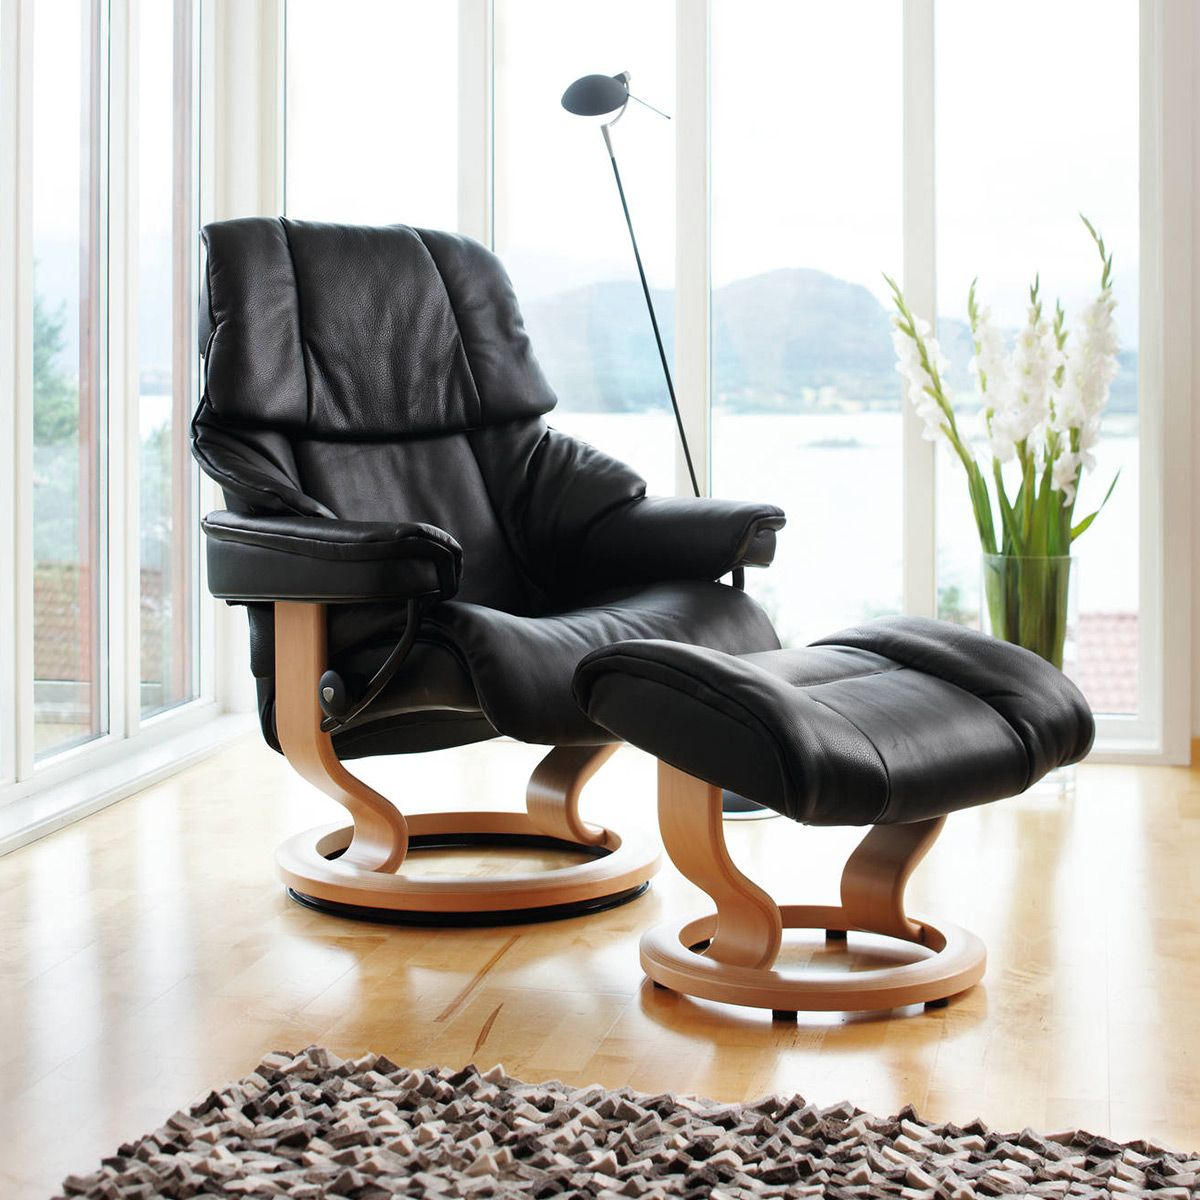 For Those Hoping To Hit The Comfort Jackpot The Sumptuous Stressless Reno Is A Sure Bet Stressless Furniture Stressless Recliner Furniture